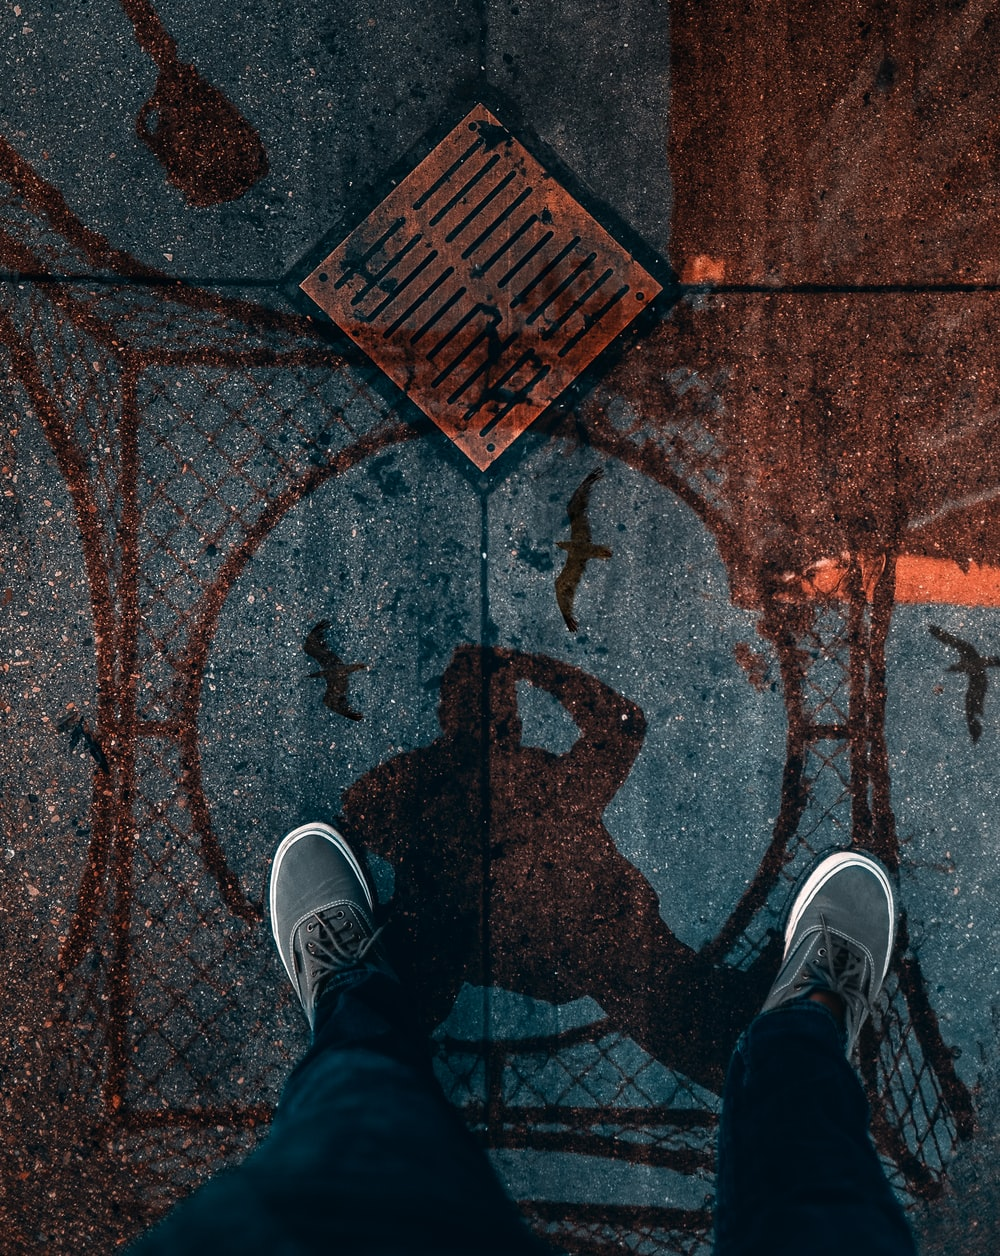 man standing on the street with reflection on water